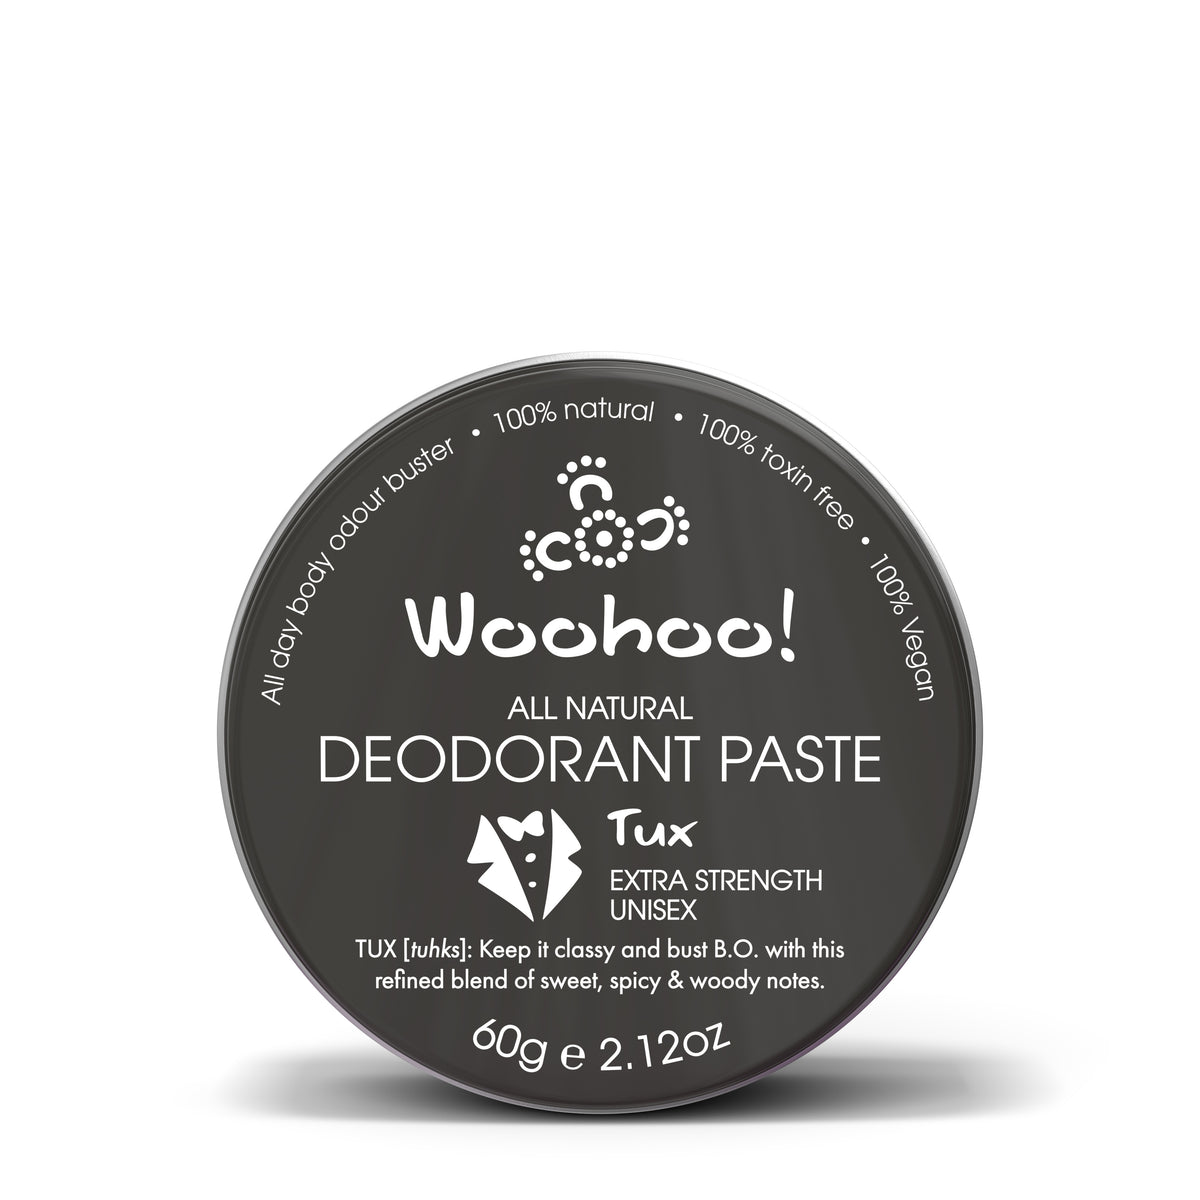 Woohoo All Natural Deodorant Paste (Tux)